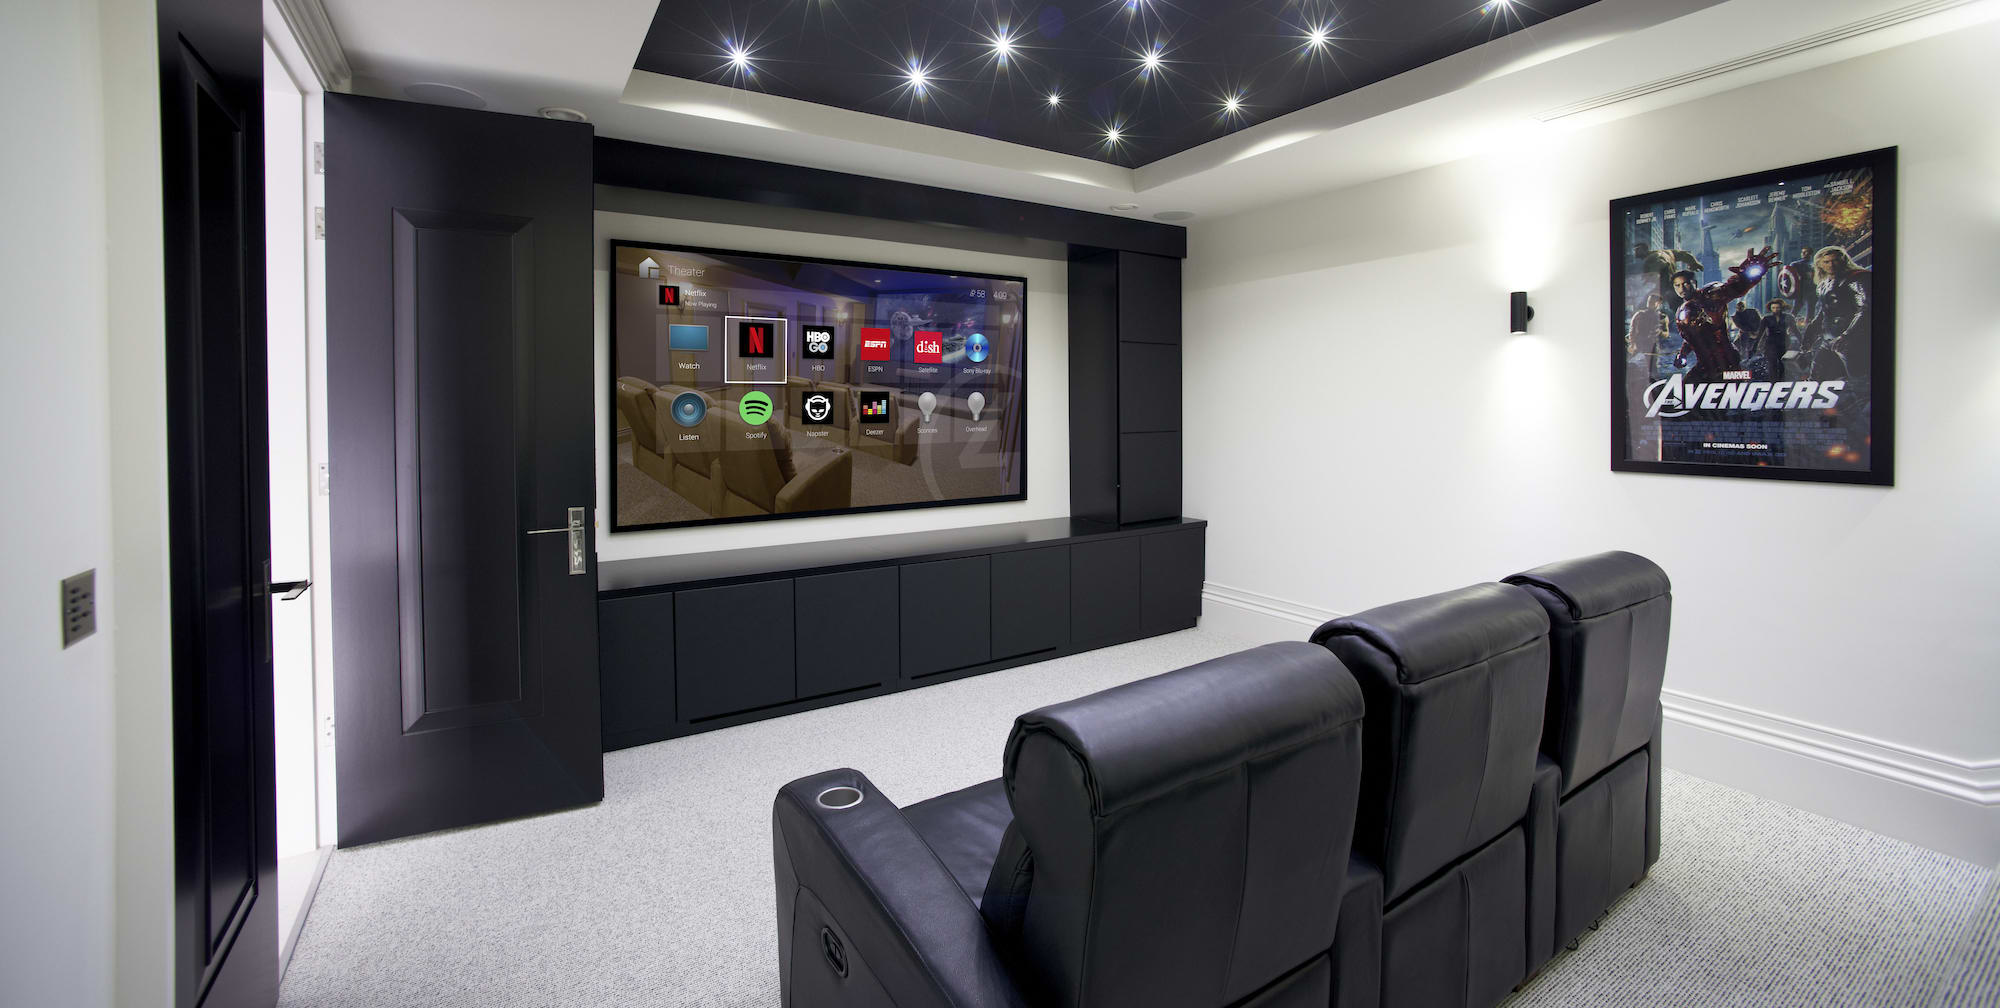 Incorporate Control4 Smart Automation into Your Home Theater